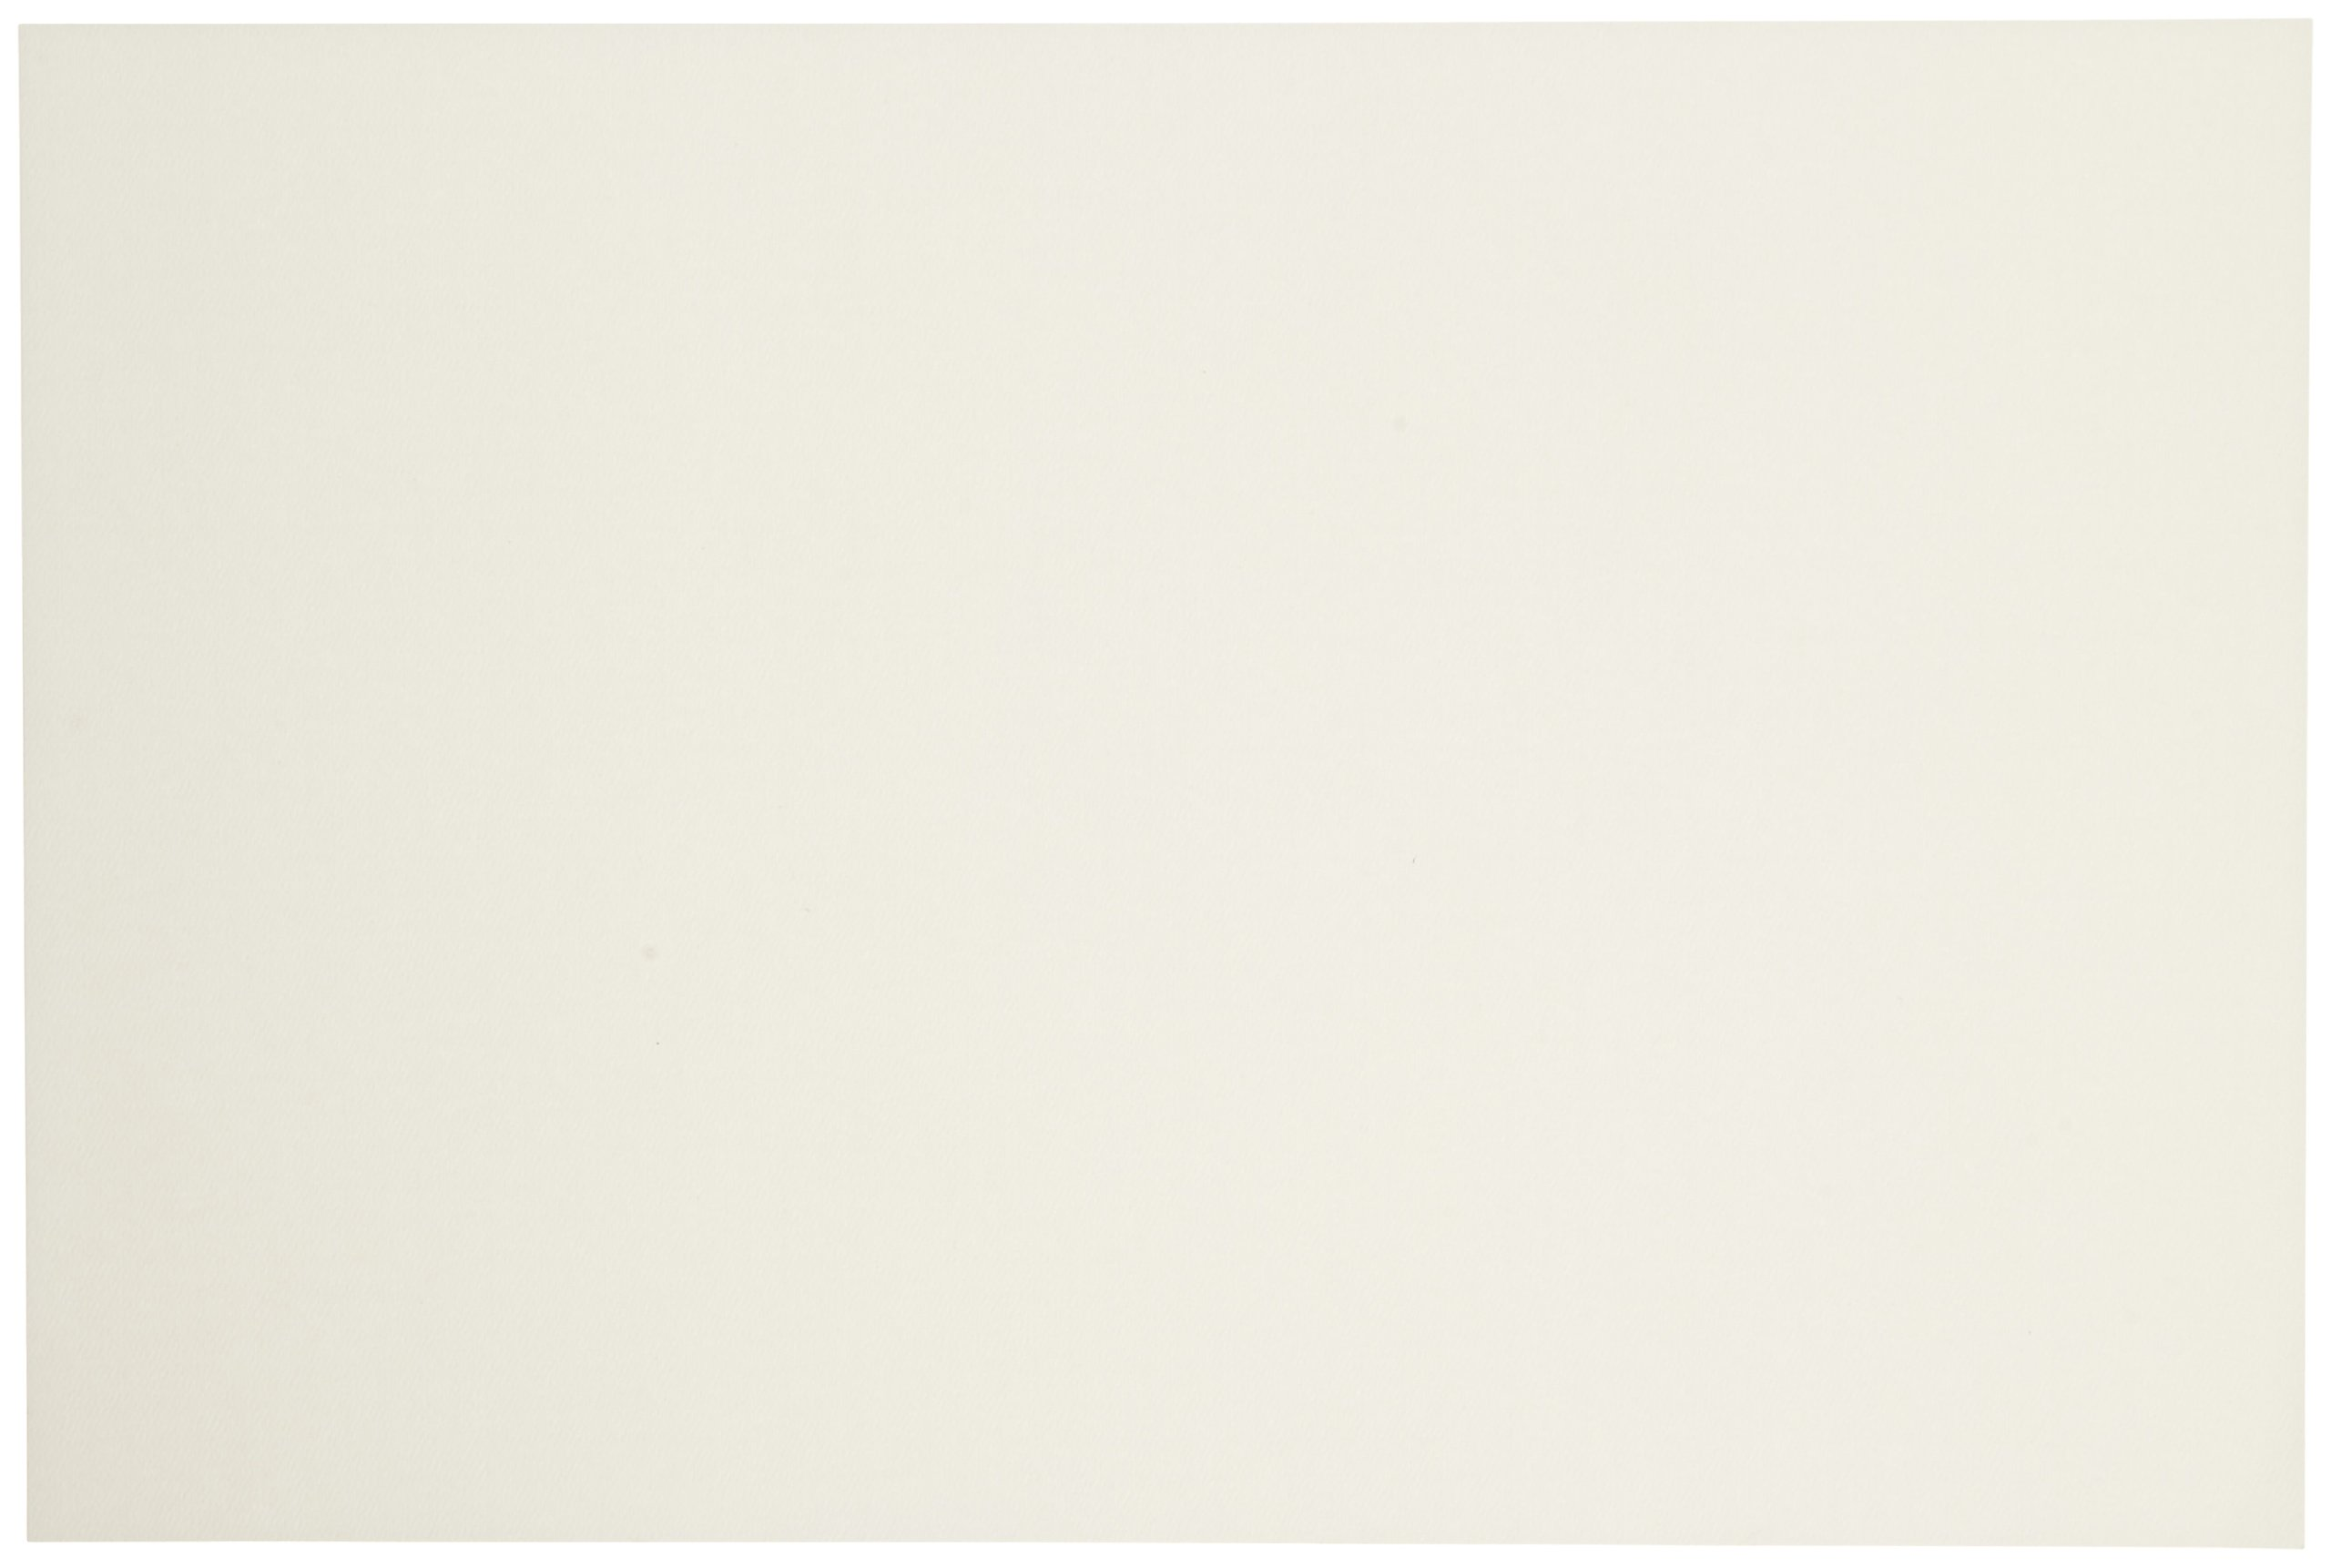 Sax Watercolor Beginner Paper, 90 lbs, 12 x 18 Inches, Natural White, Pack of 500